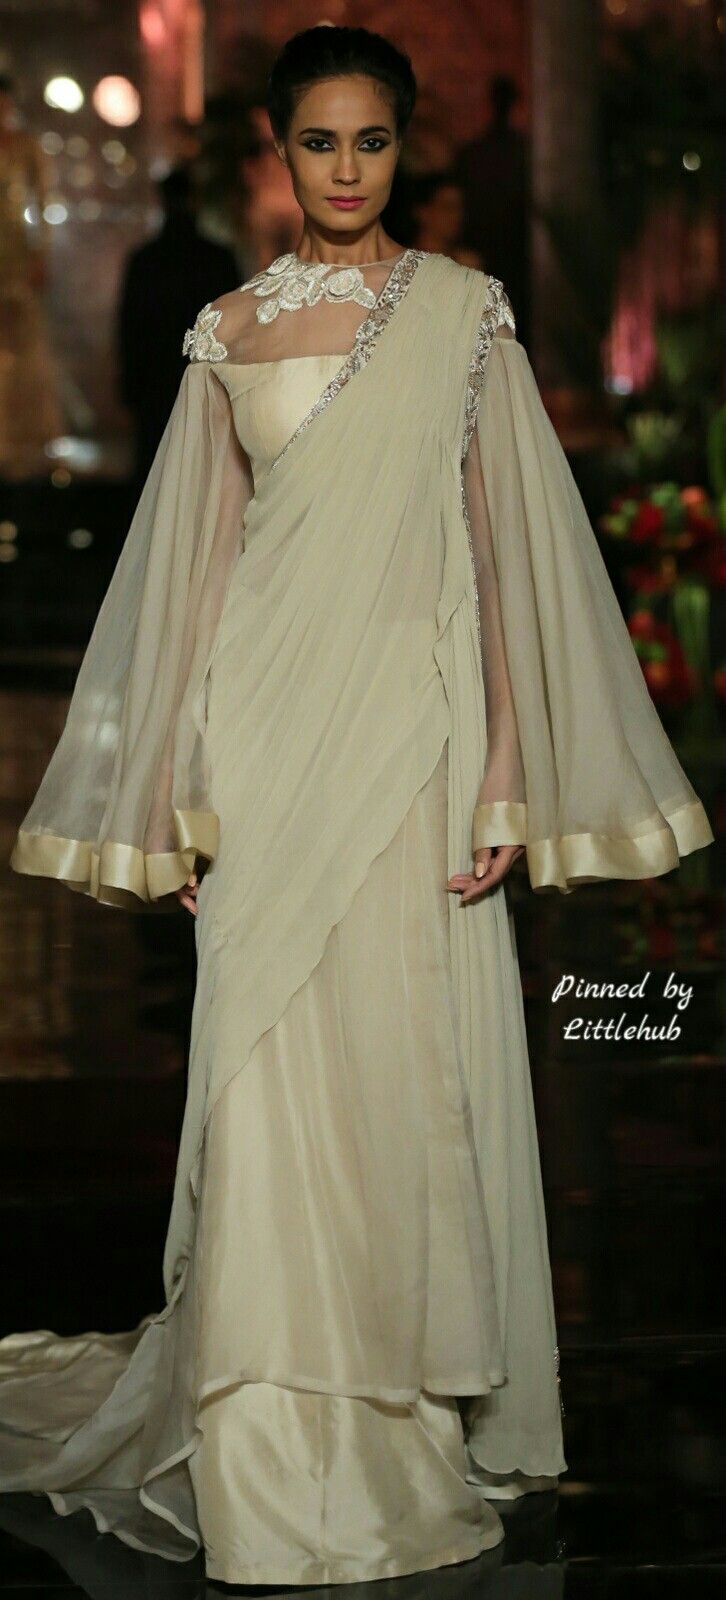 Pinterest @Littlehub || Six yard- The Saree ❤•。*゚_ Manish Malhotra outfit.I know this isn't a saree but wud love this version as a saree